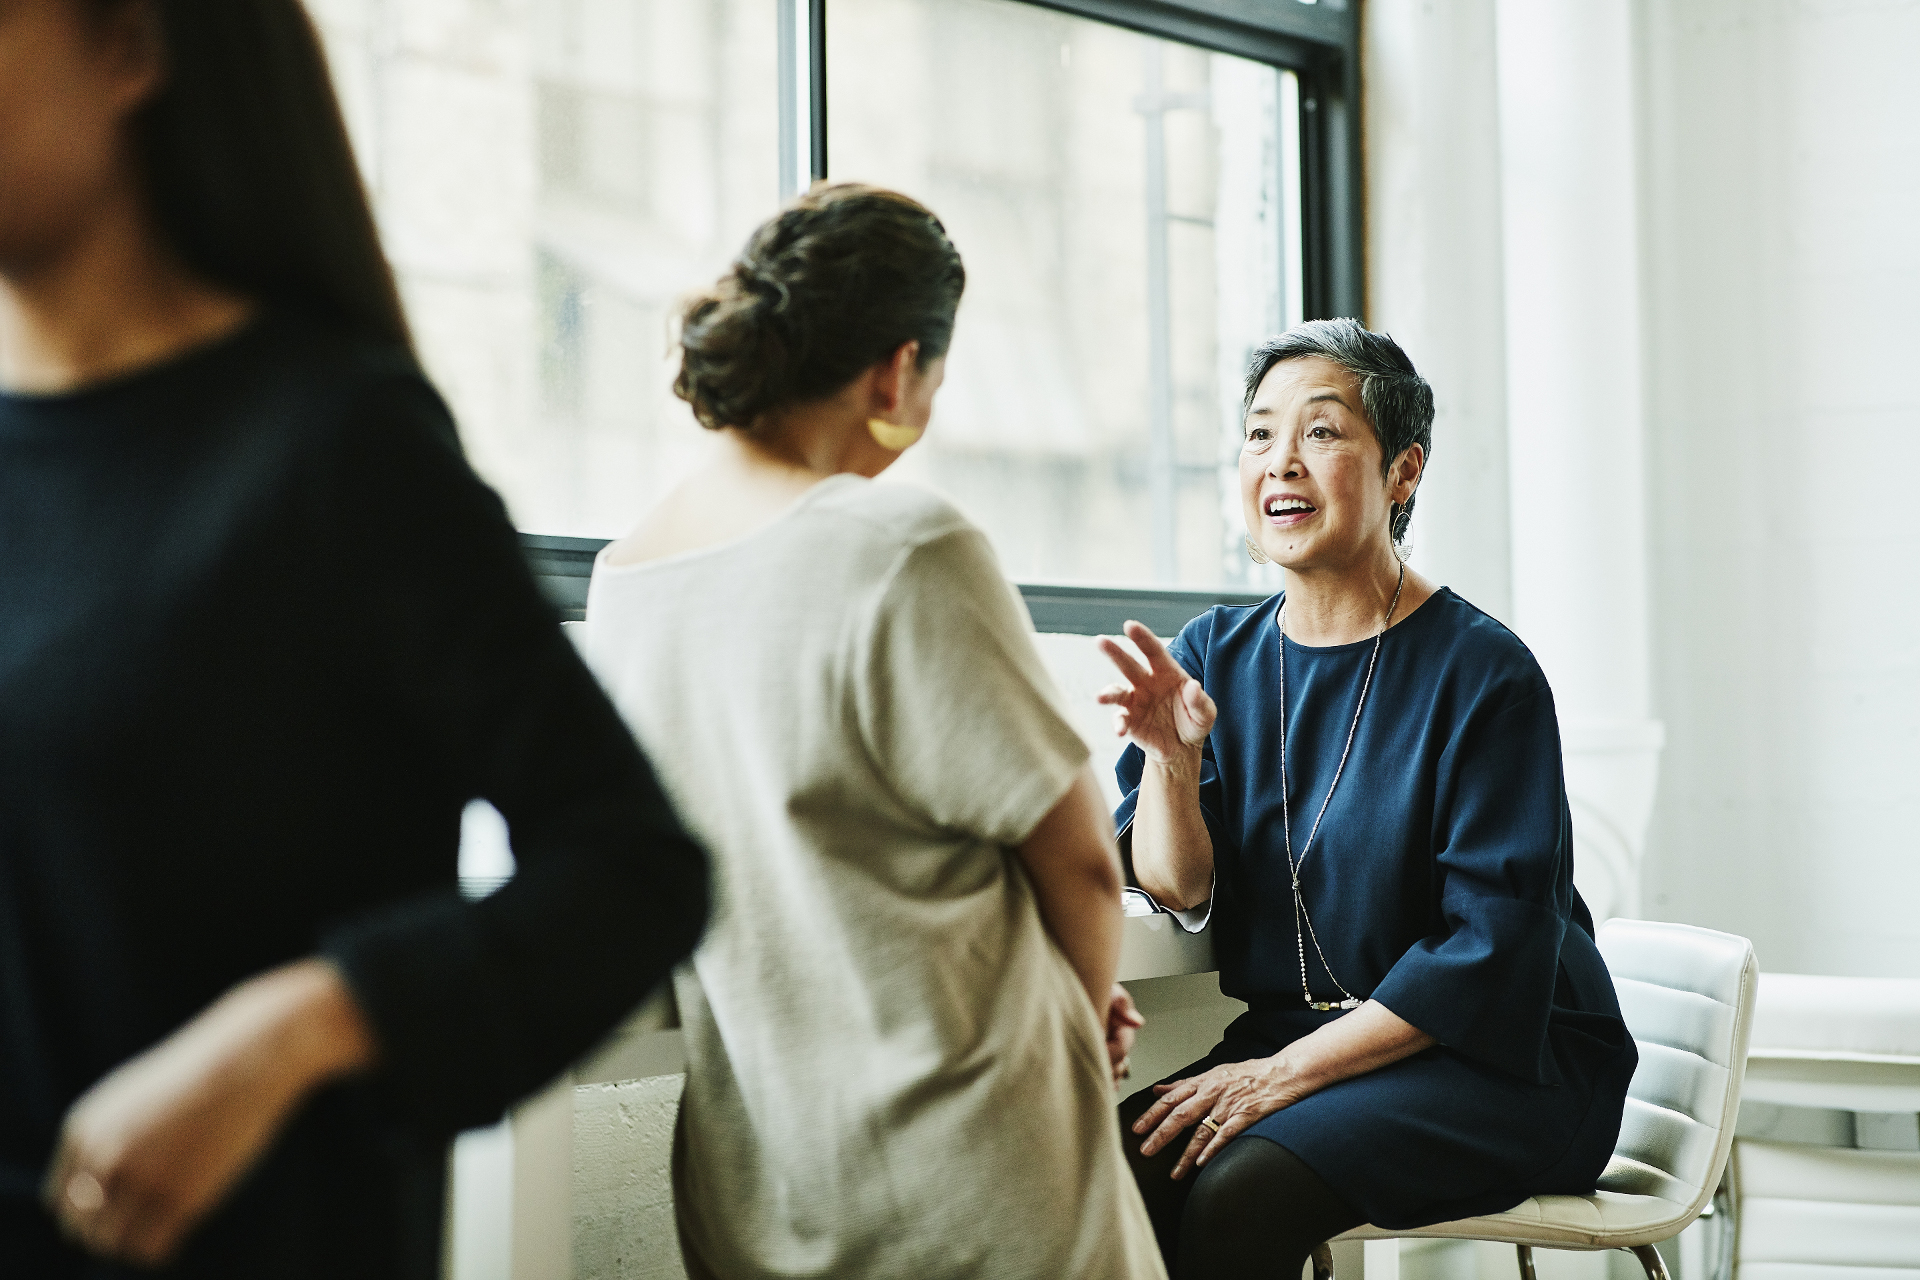 Smiling senior businesswoman leading project discussion with colleague in office conference room